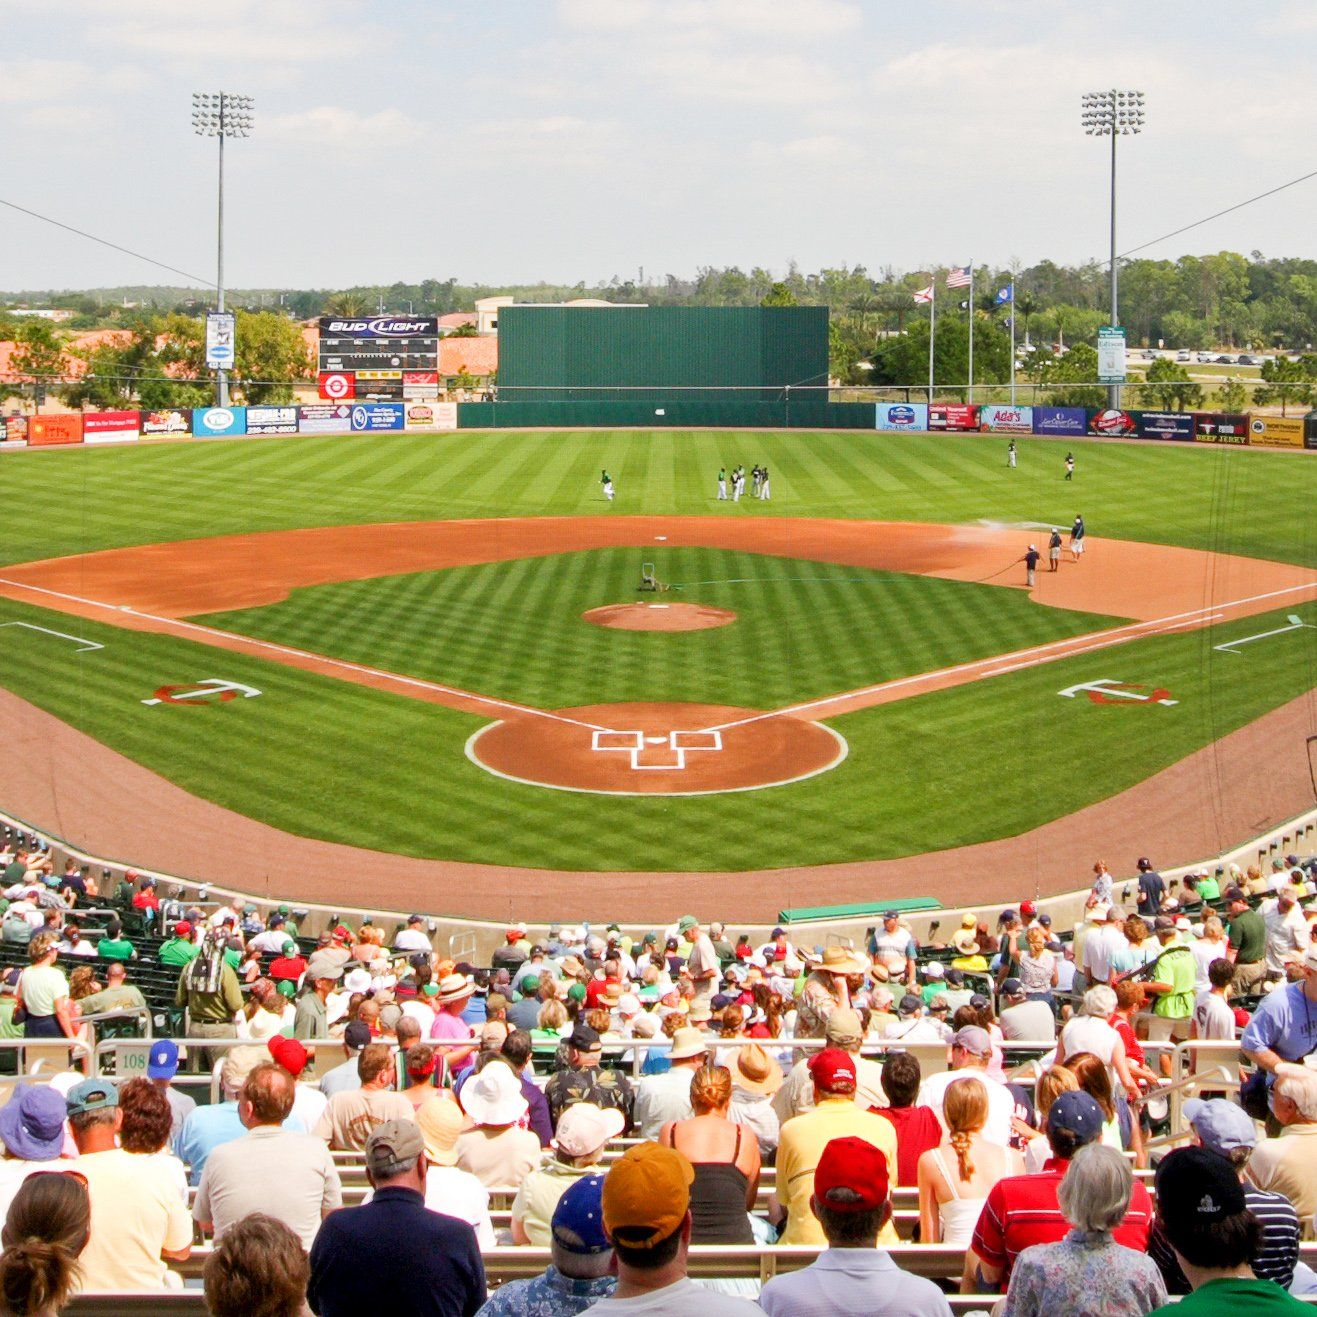 8 Things To Know When Planning An Mlb Spring Training Trip Mlb Spring Training Cardinals Spring Training Spring Training Florida